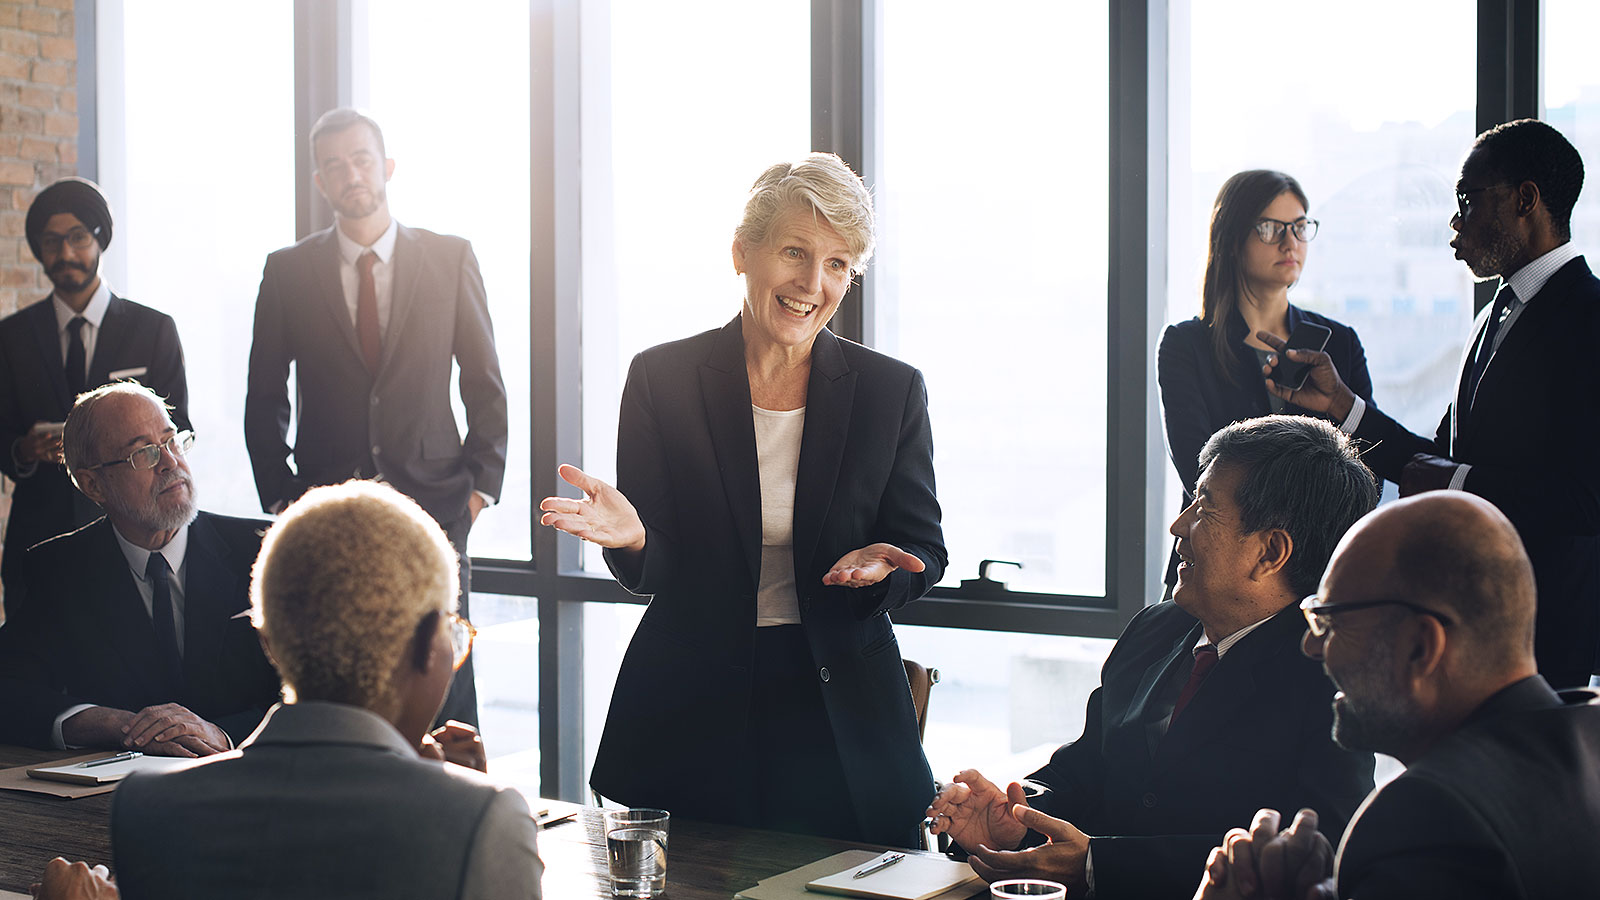 Just because you have a female manager doesn't mean you'll get better pay